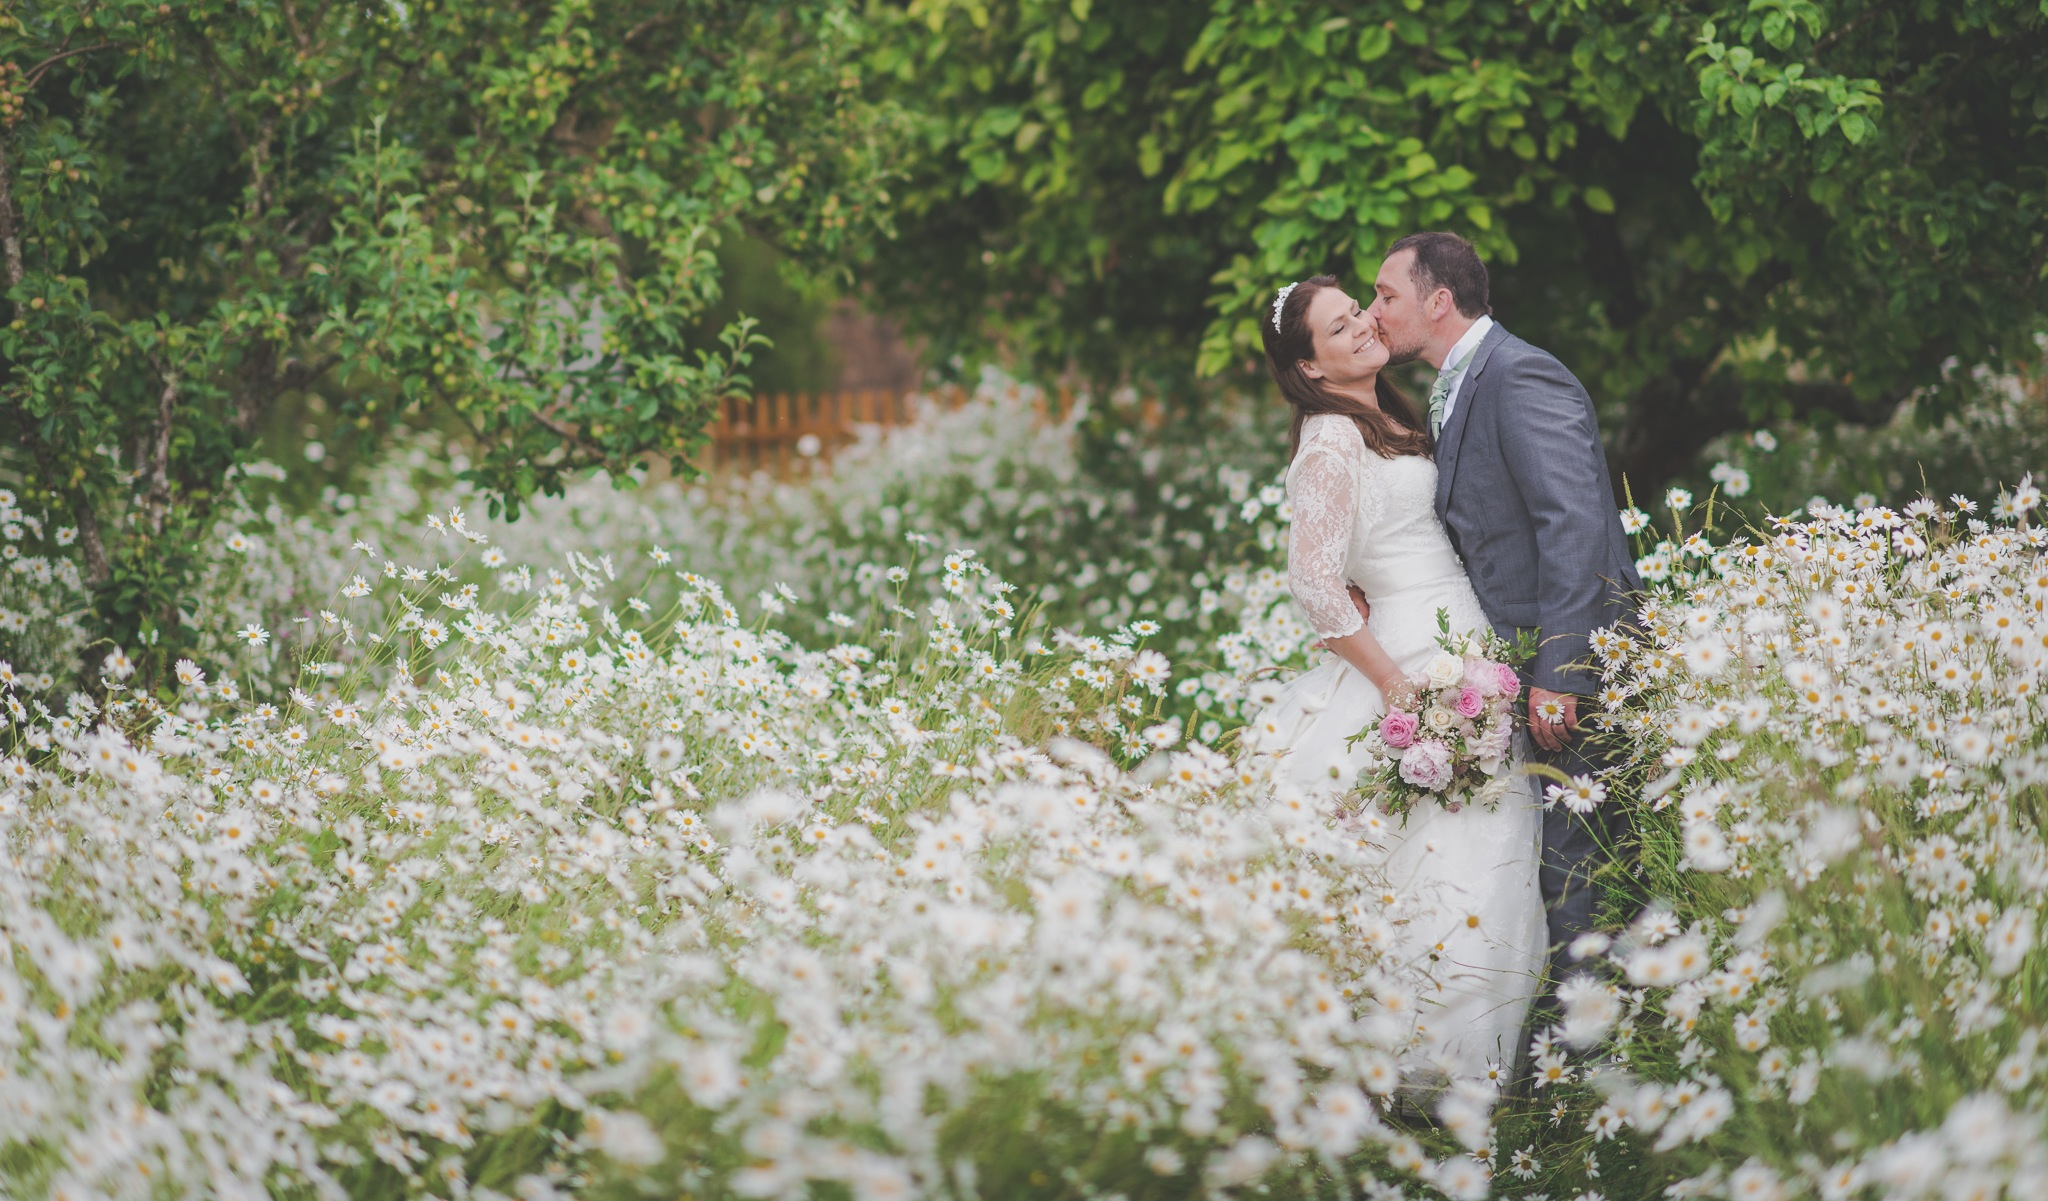 Wedding-Photographer-Wimborne-Deans-Court01